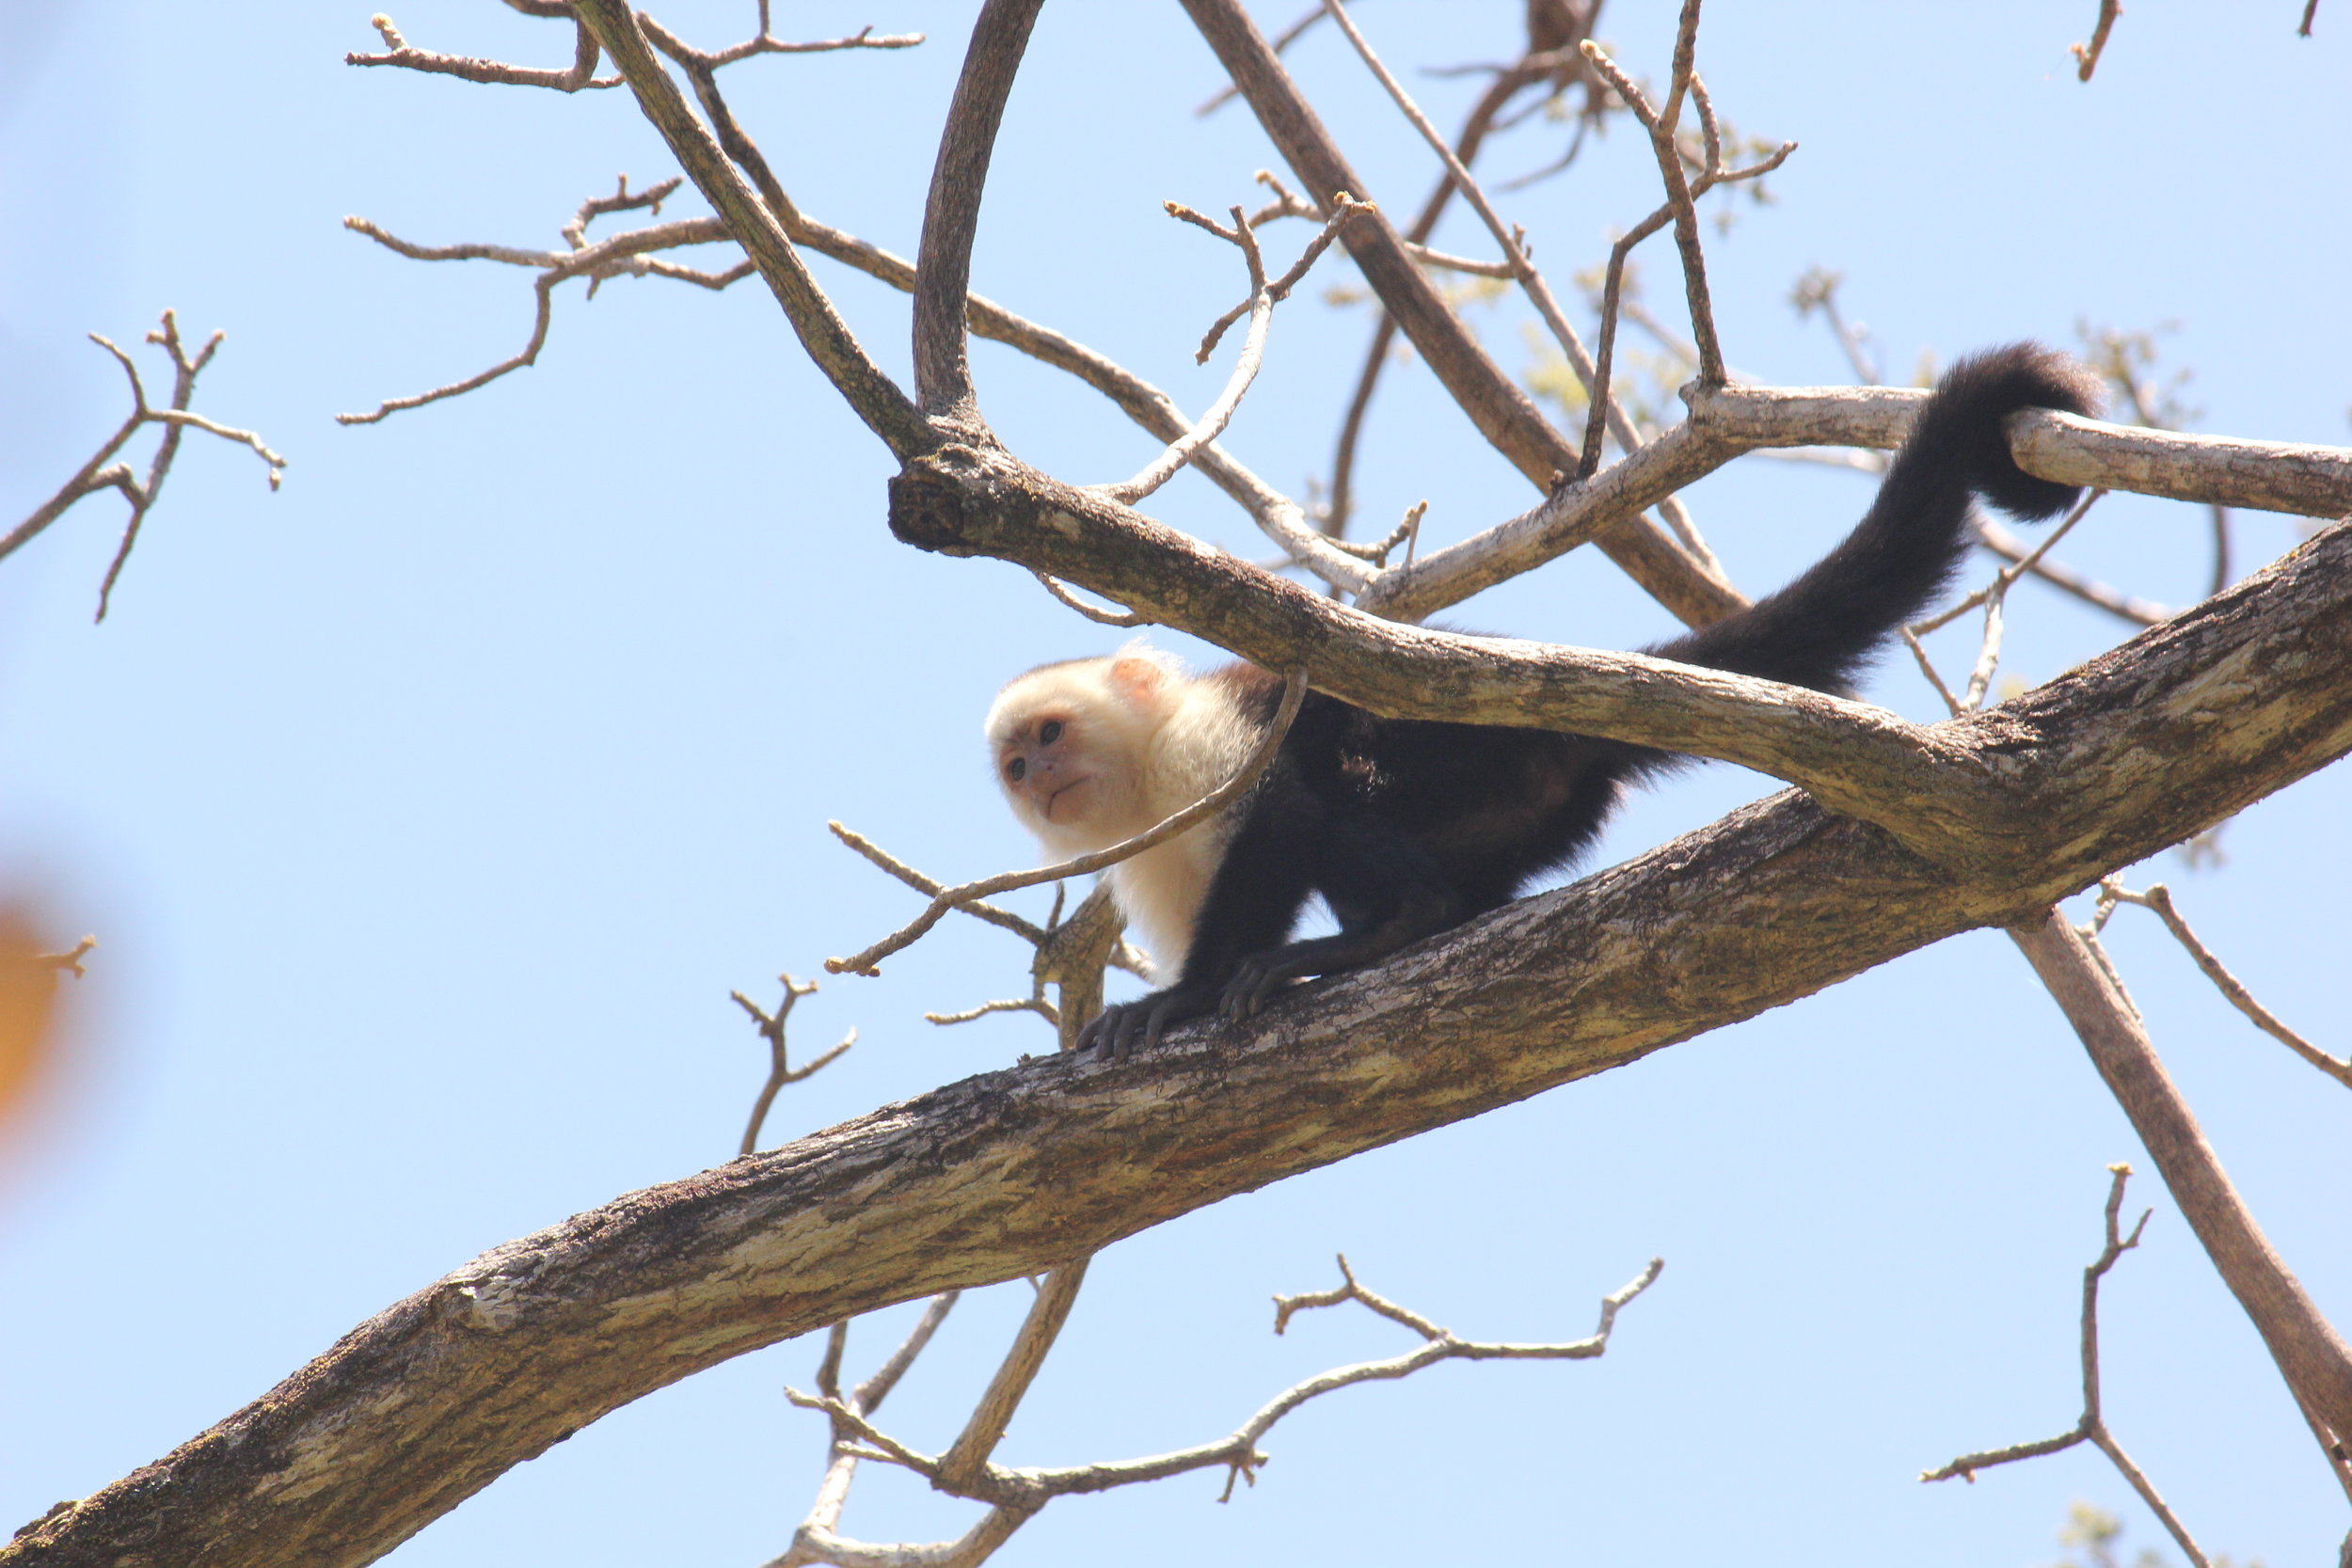 Some primates, including white-faced capuchins, inhabit extremely seasonal habitats. Along with many collaborators at Sector Santa Rosa, Costa Rica, I am interested in how primates cope with extreme seasonal change through modifications to diet, behaviour, and gut microbes. Photo credit: David Hormann